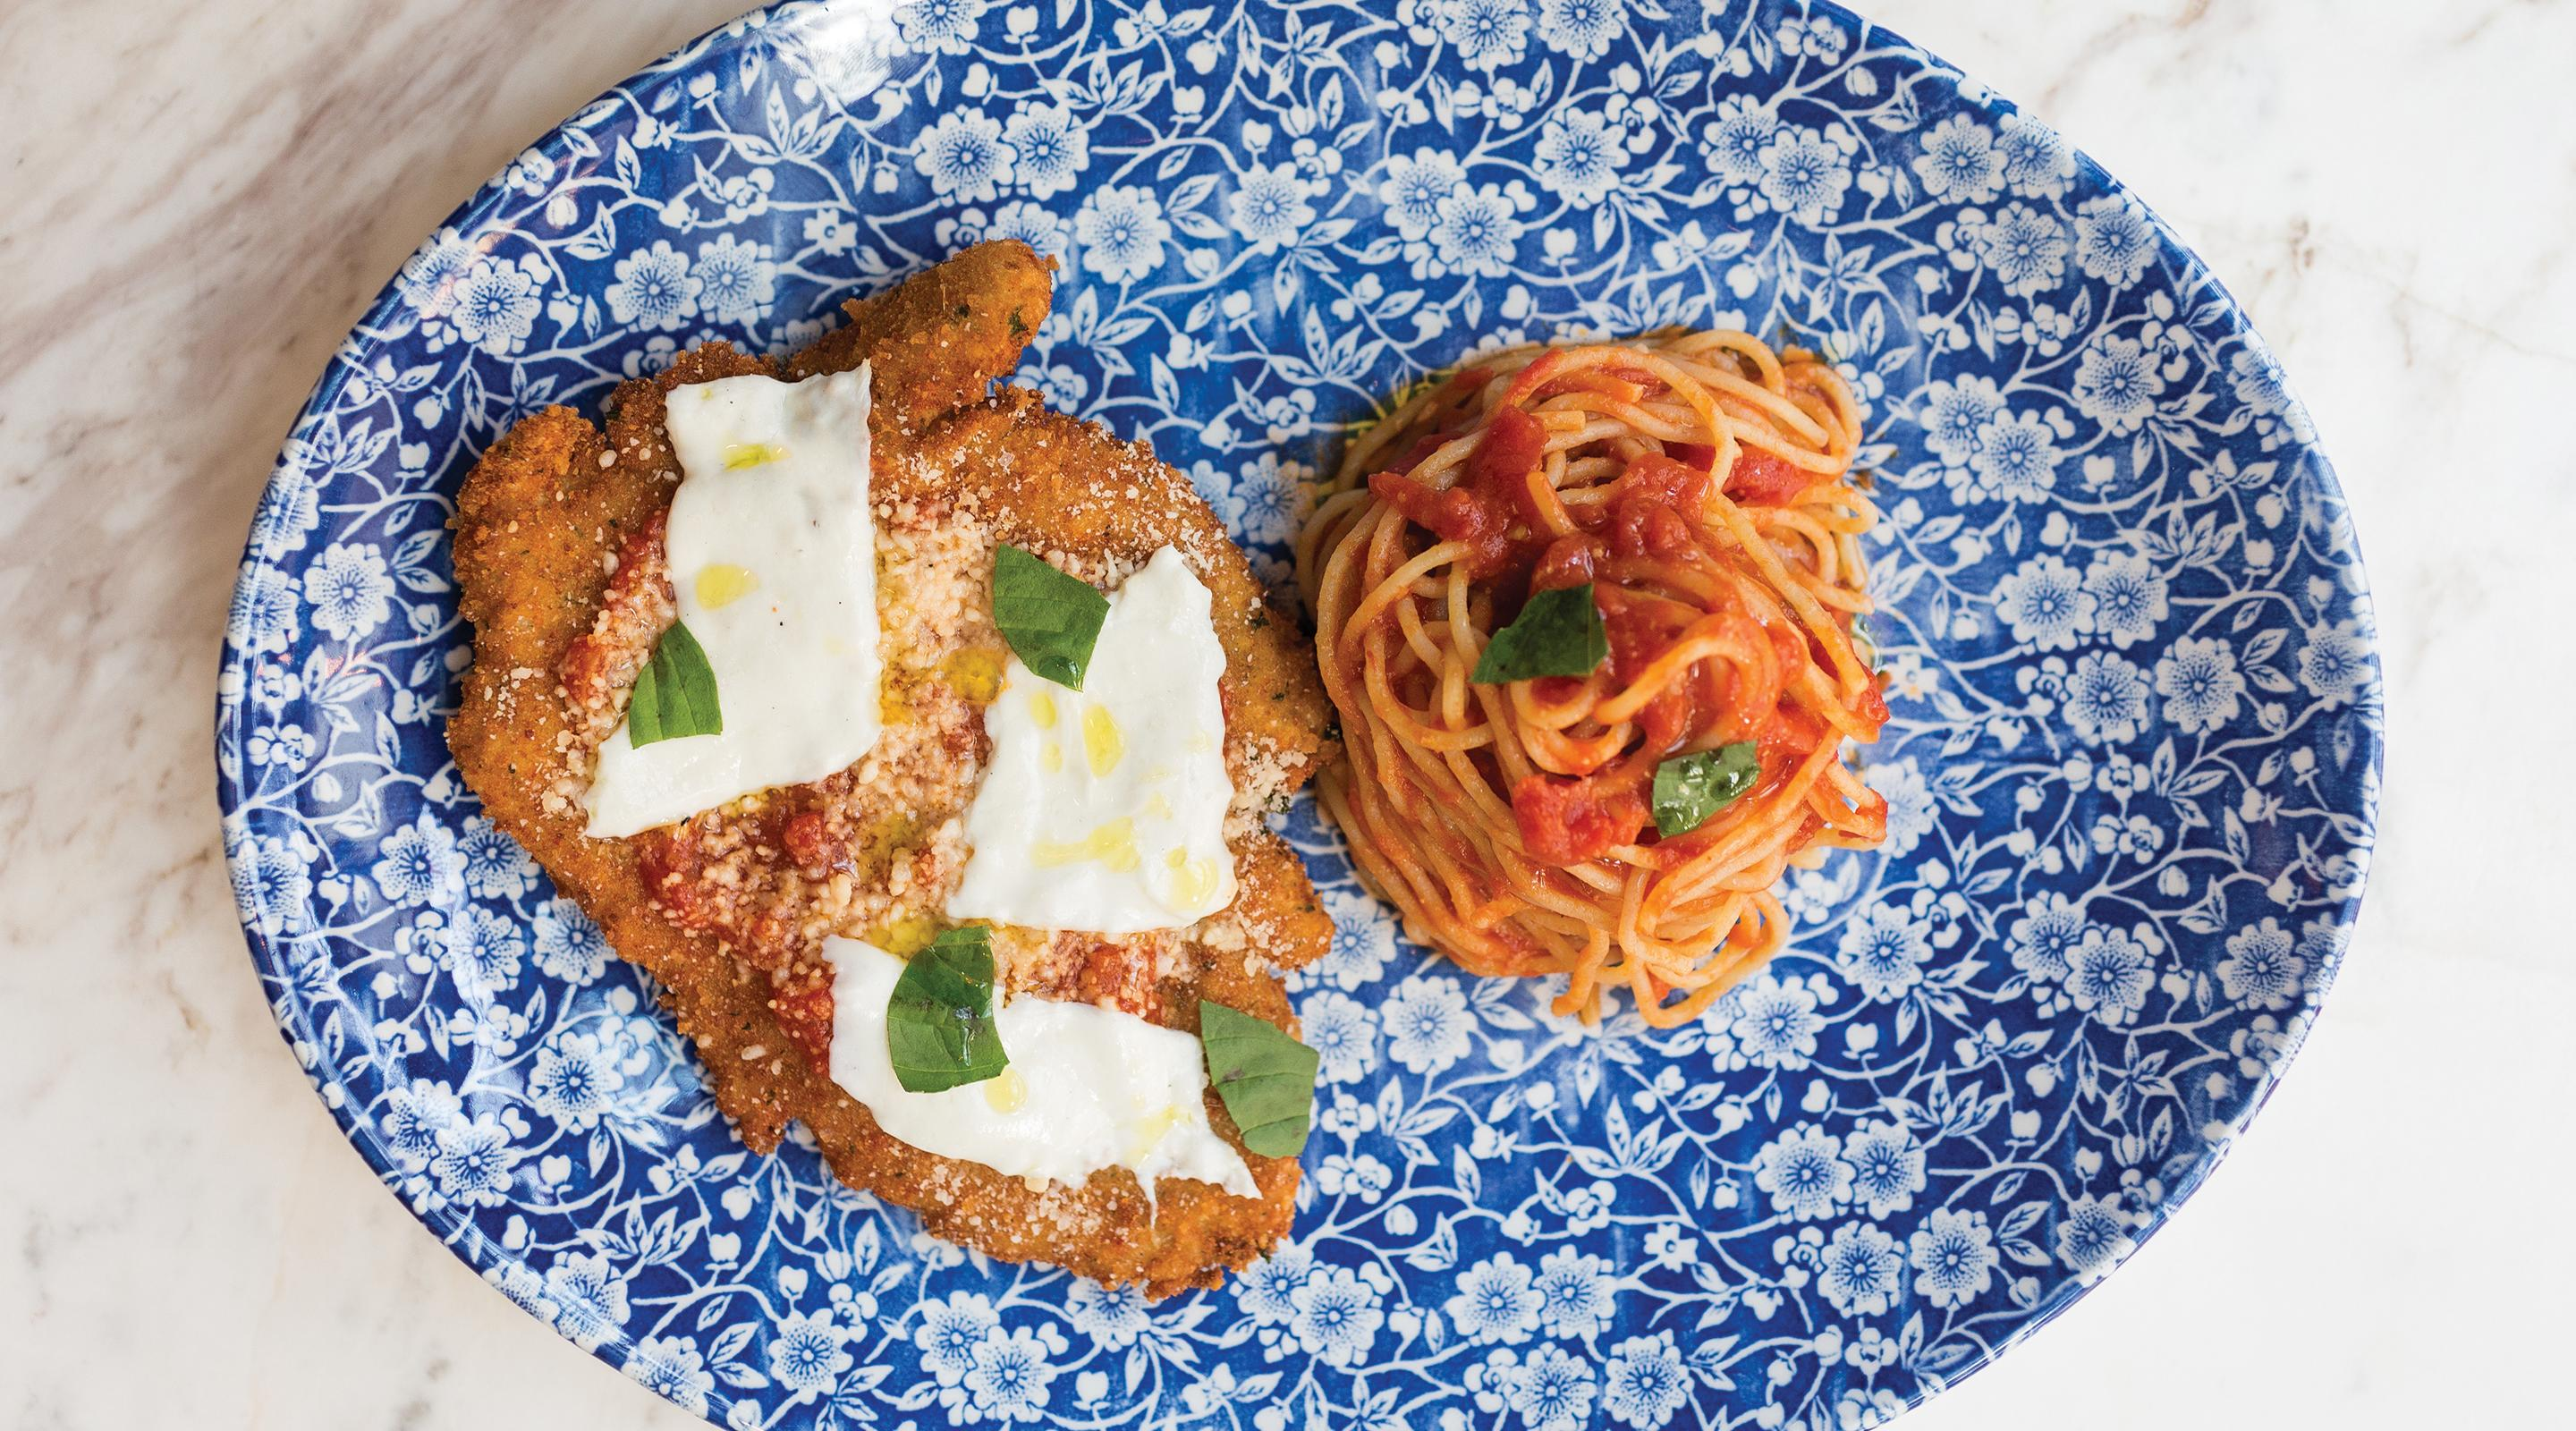 A plate of chicken parmesan and spaghetti with sauce.